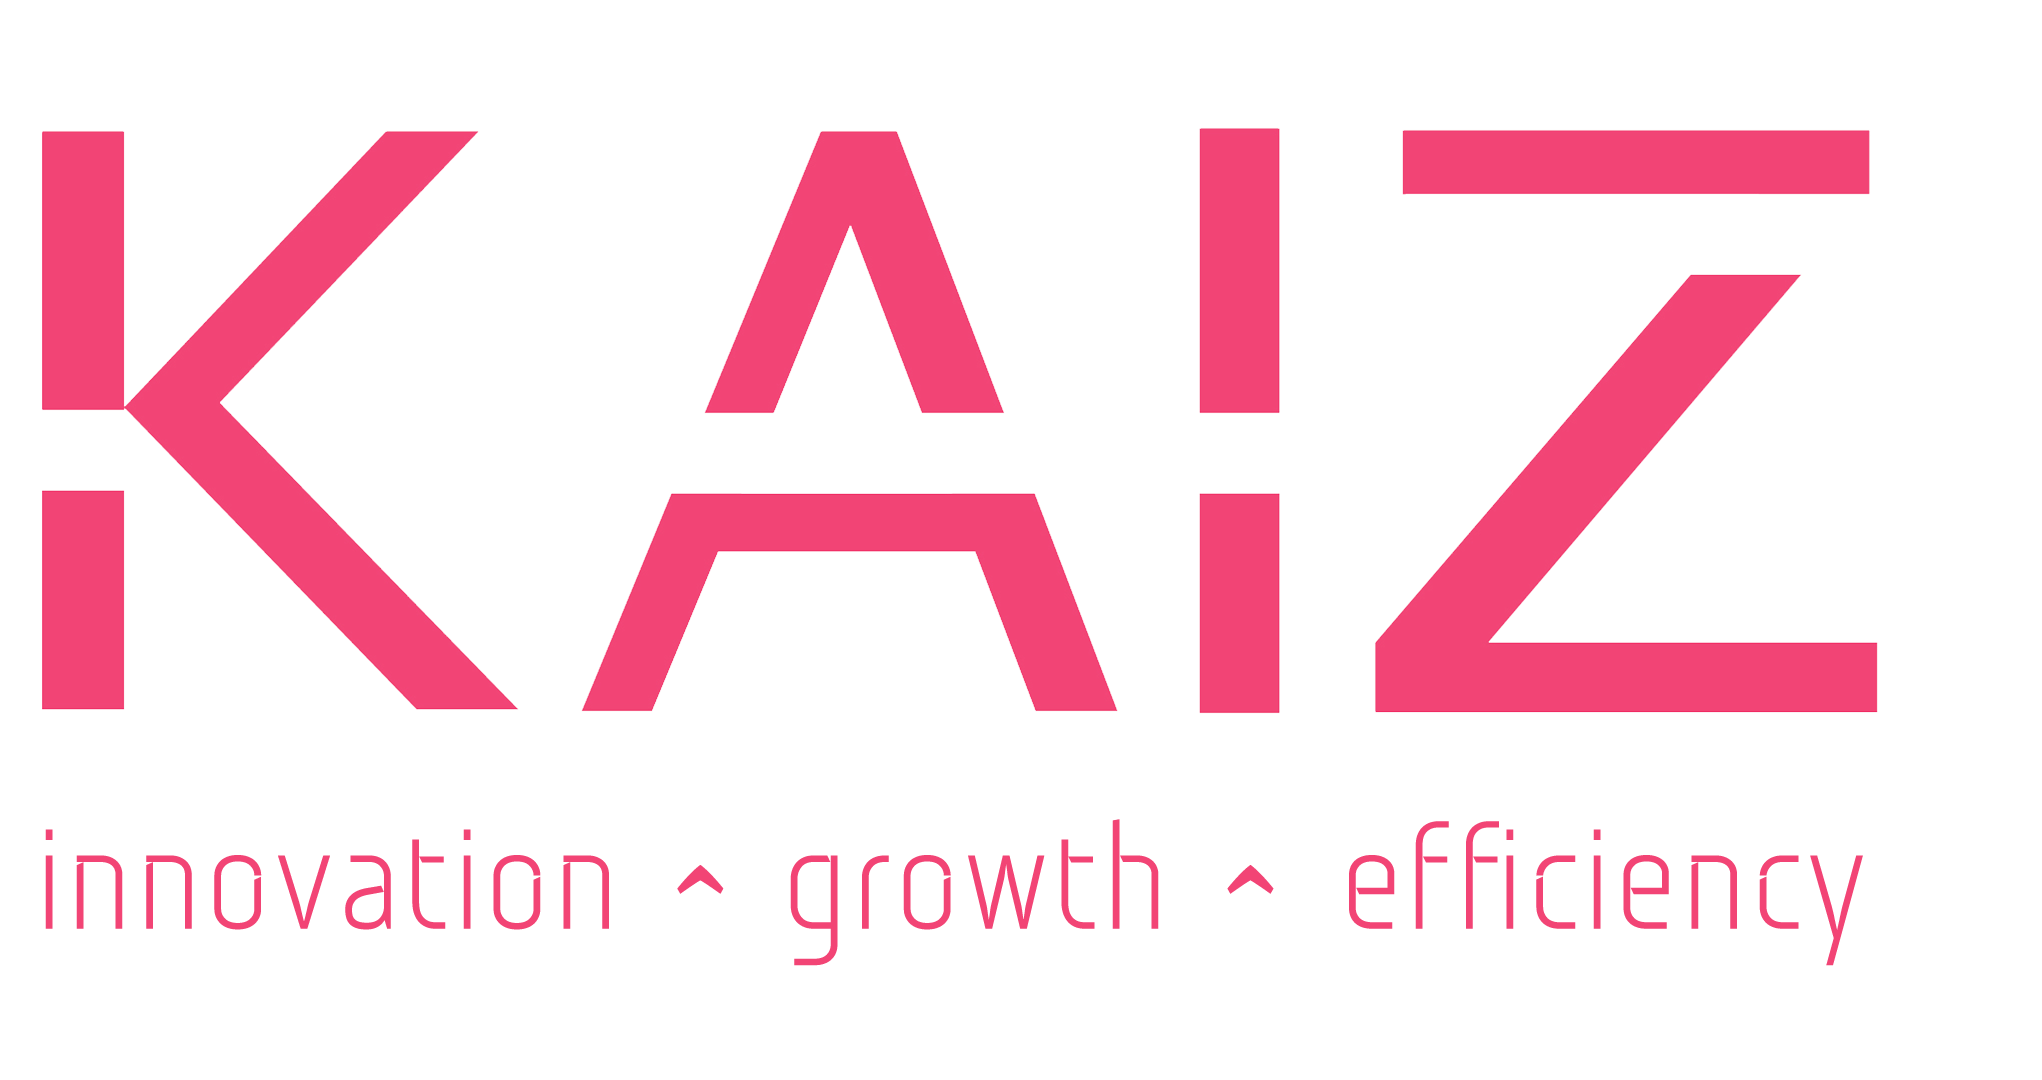 KAIZ Consulting logo with the word KAIZ followed by innovation, growth and efficiency